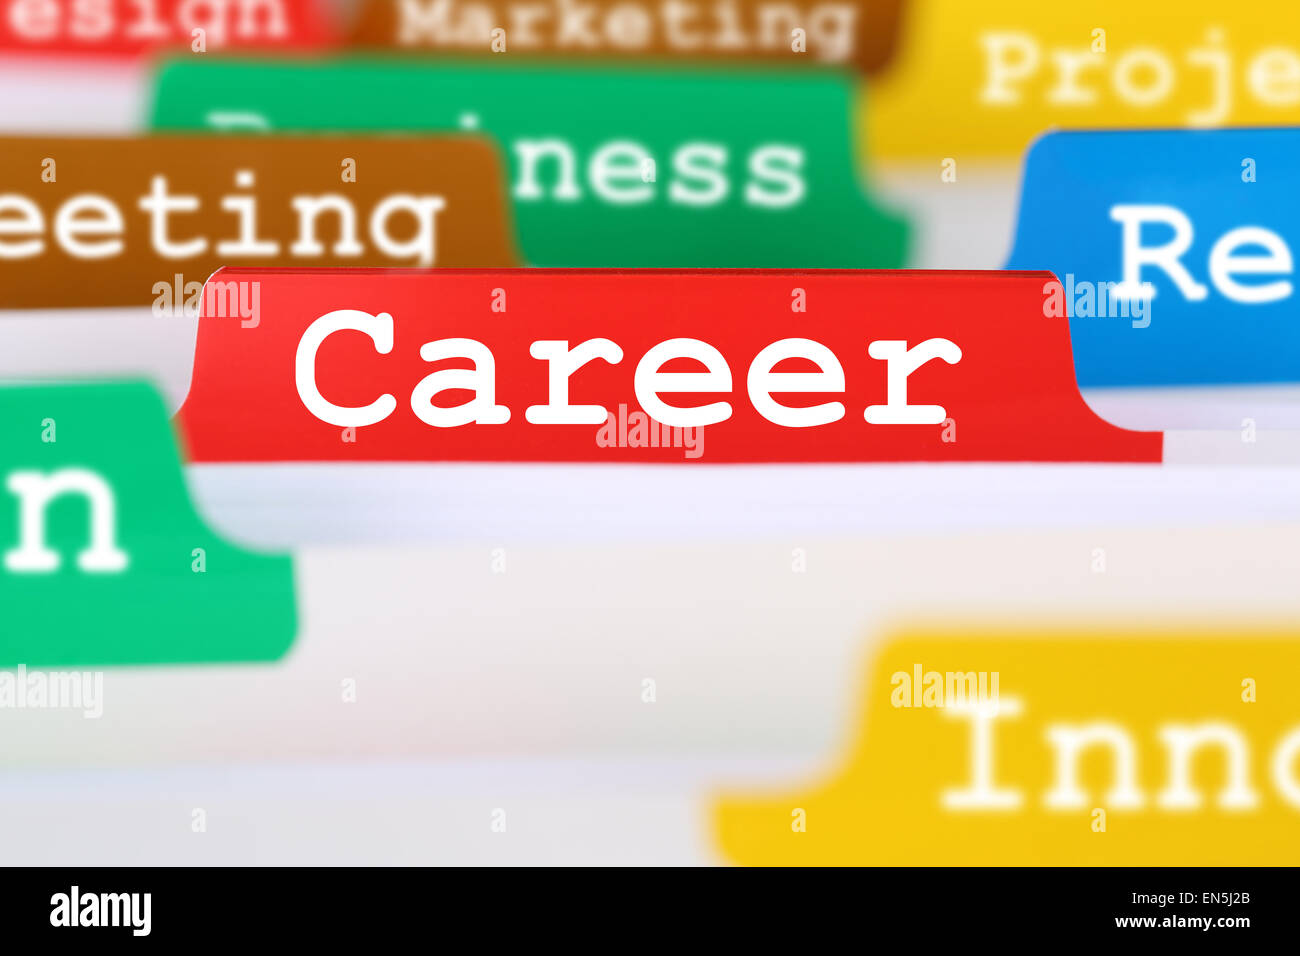 Success career opportunities and development business concept - Stock Image